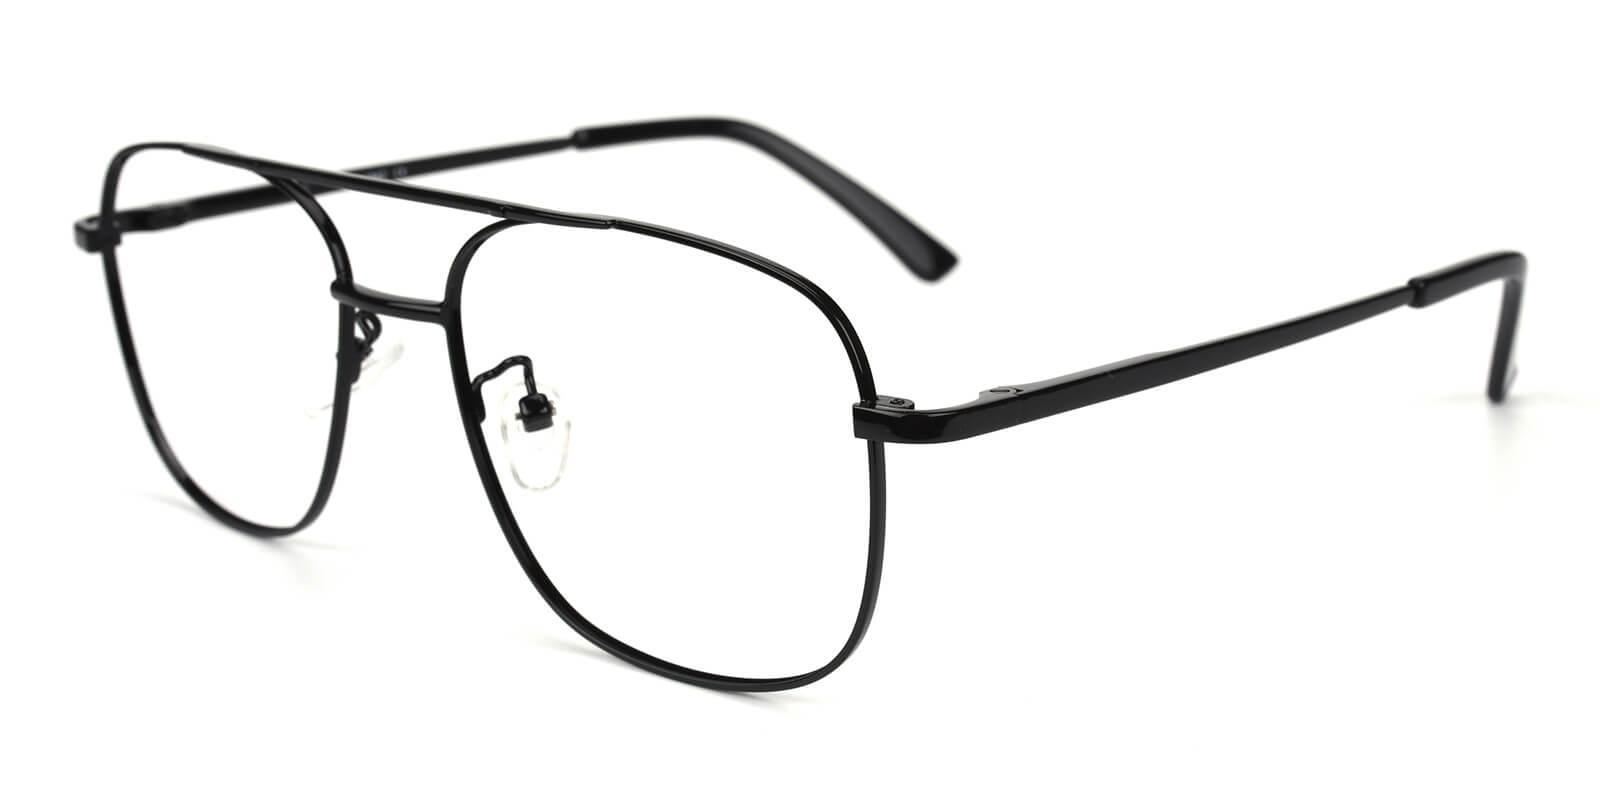 Sally-Black-Aviator-Metal-Eyeglasses-additional1